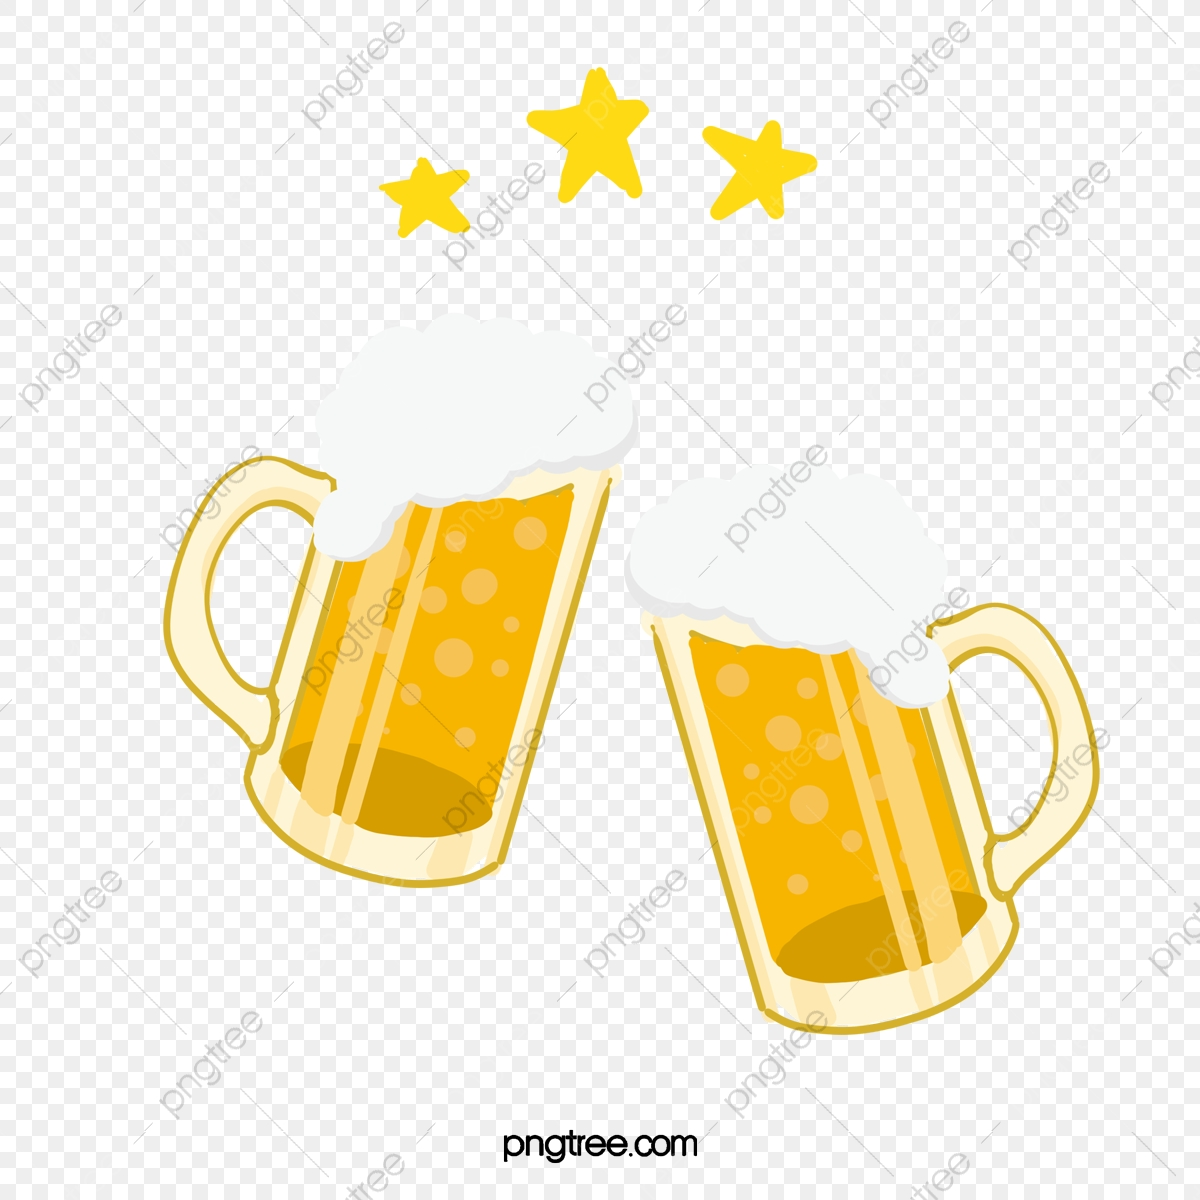 Beer clipart file. Cheers png transparent